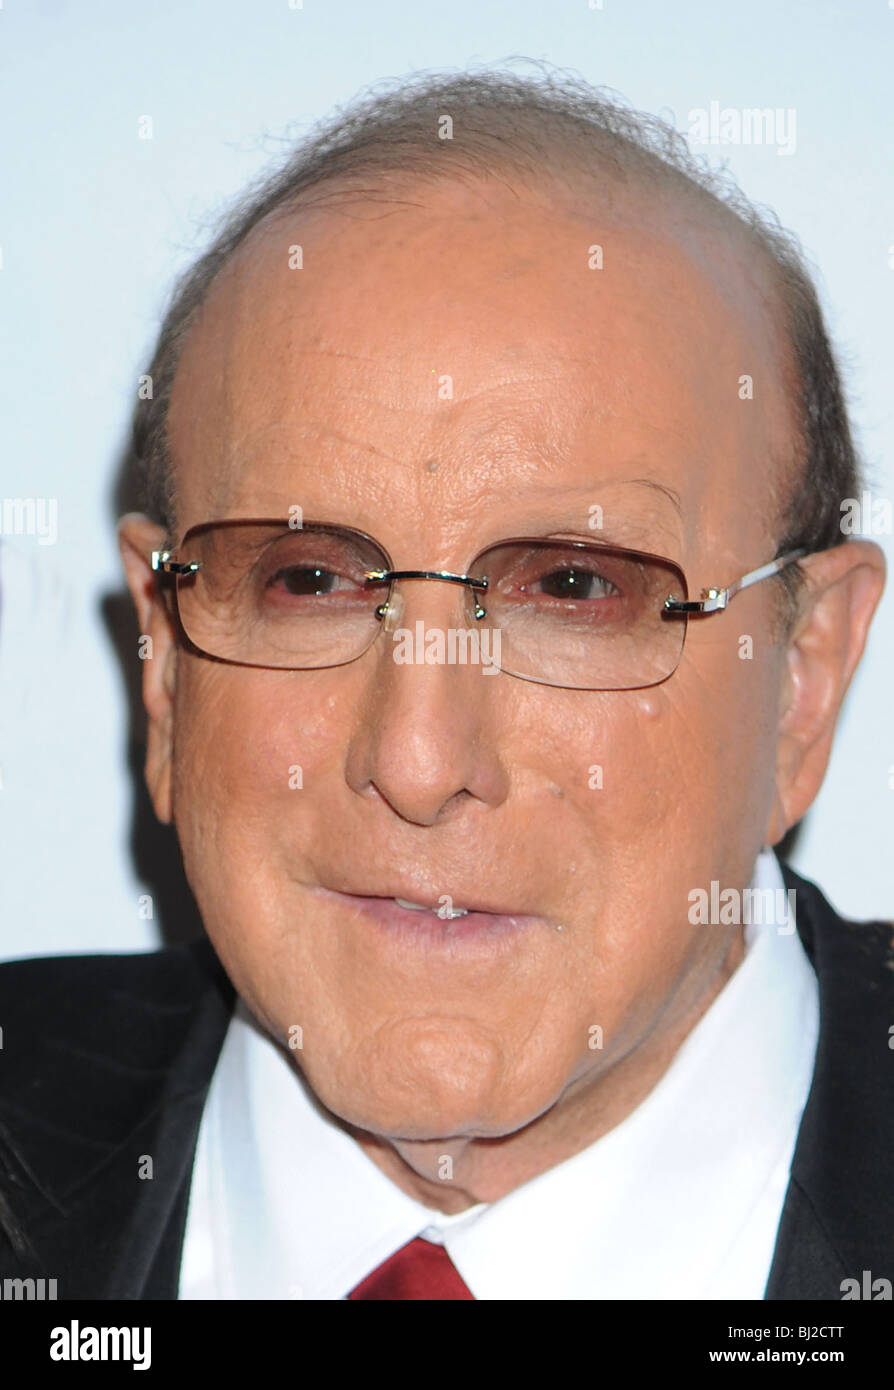 CLIVE DAVIS - UK music impressario in January 2010 - Stock Image